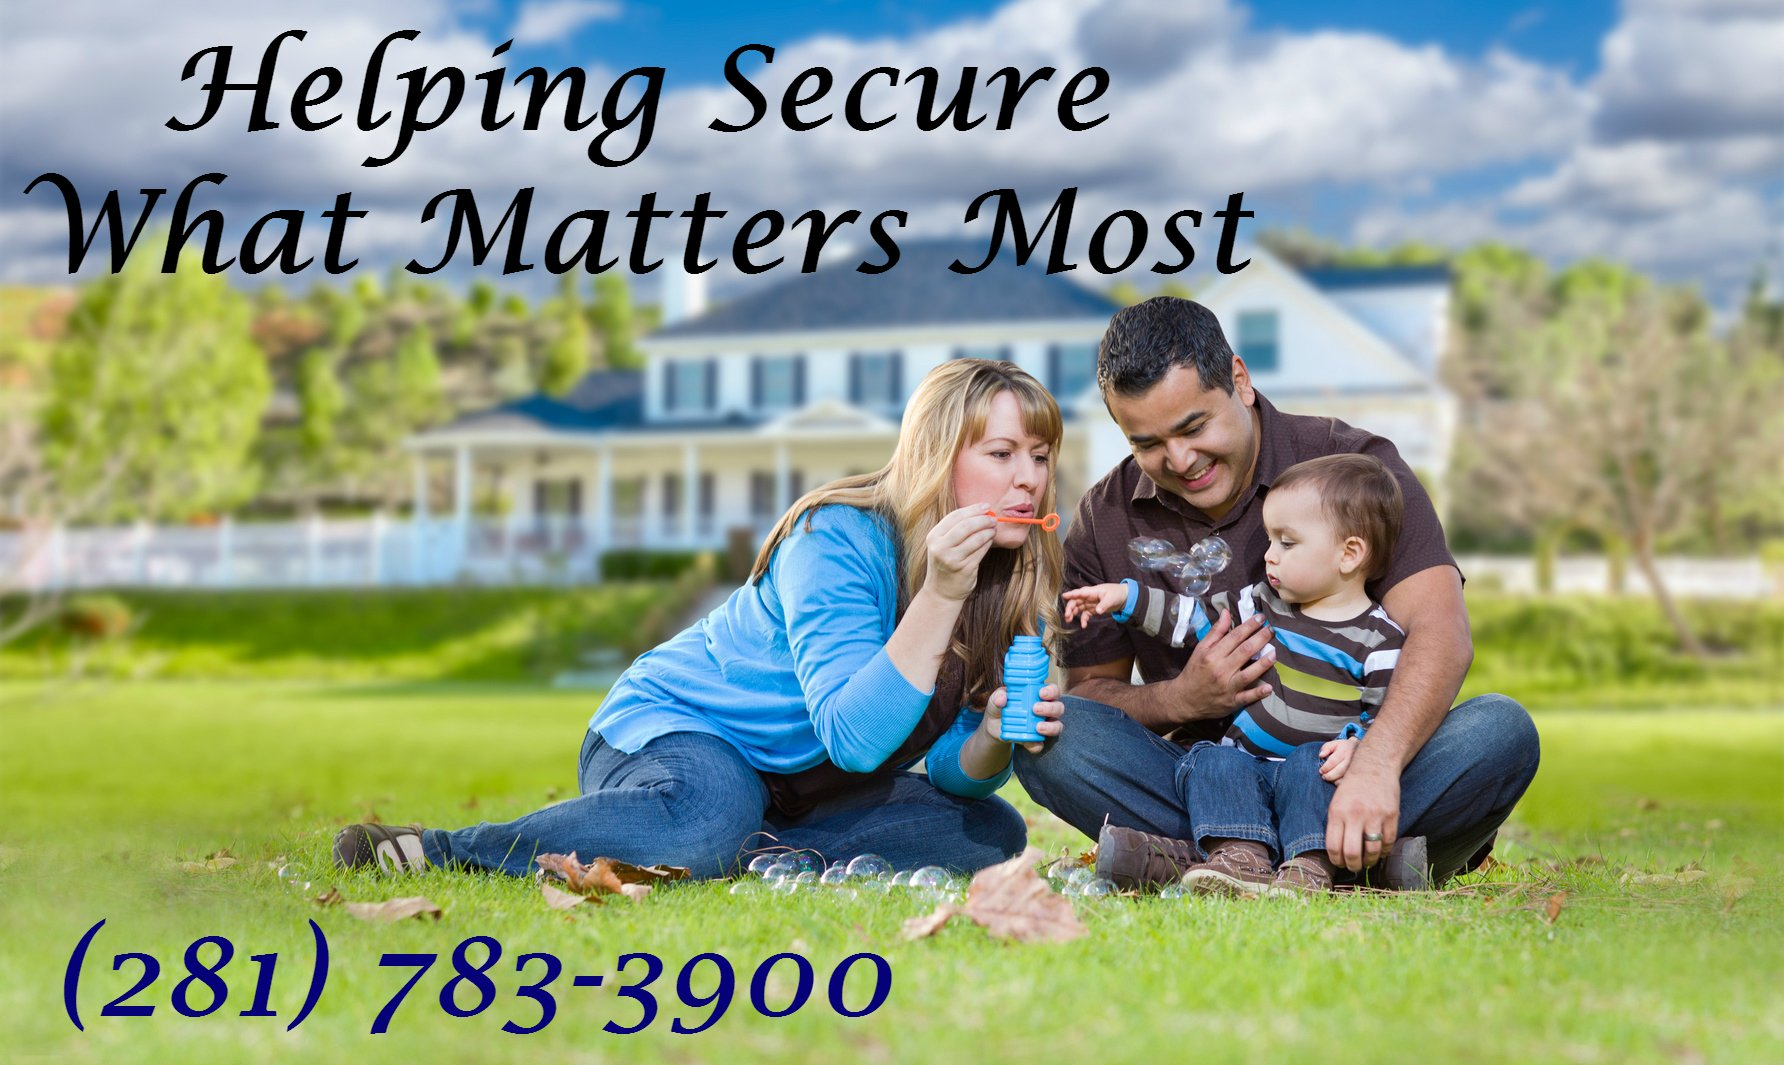 Cellular Security Monitoring Service